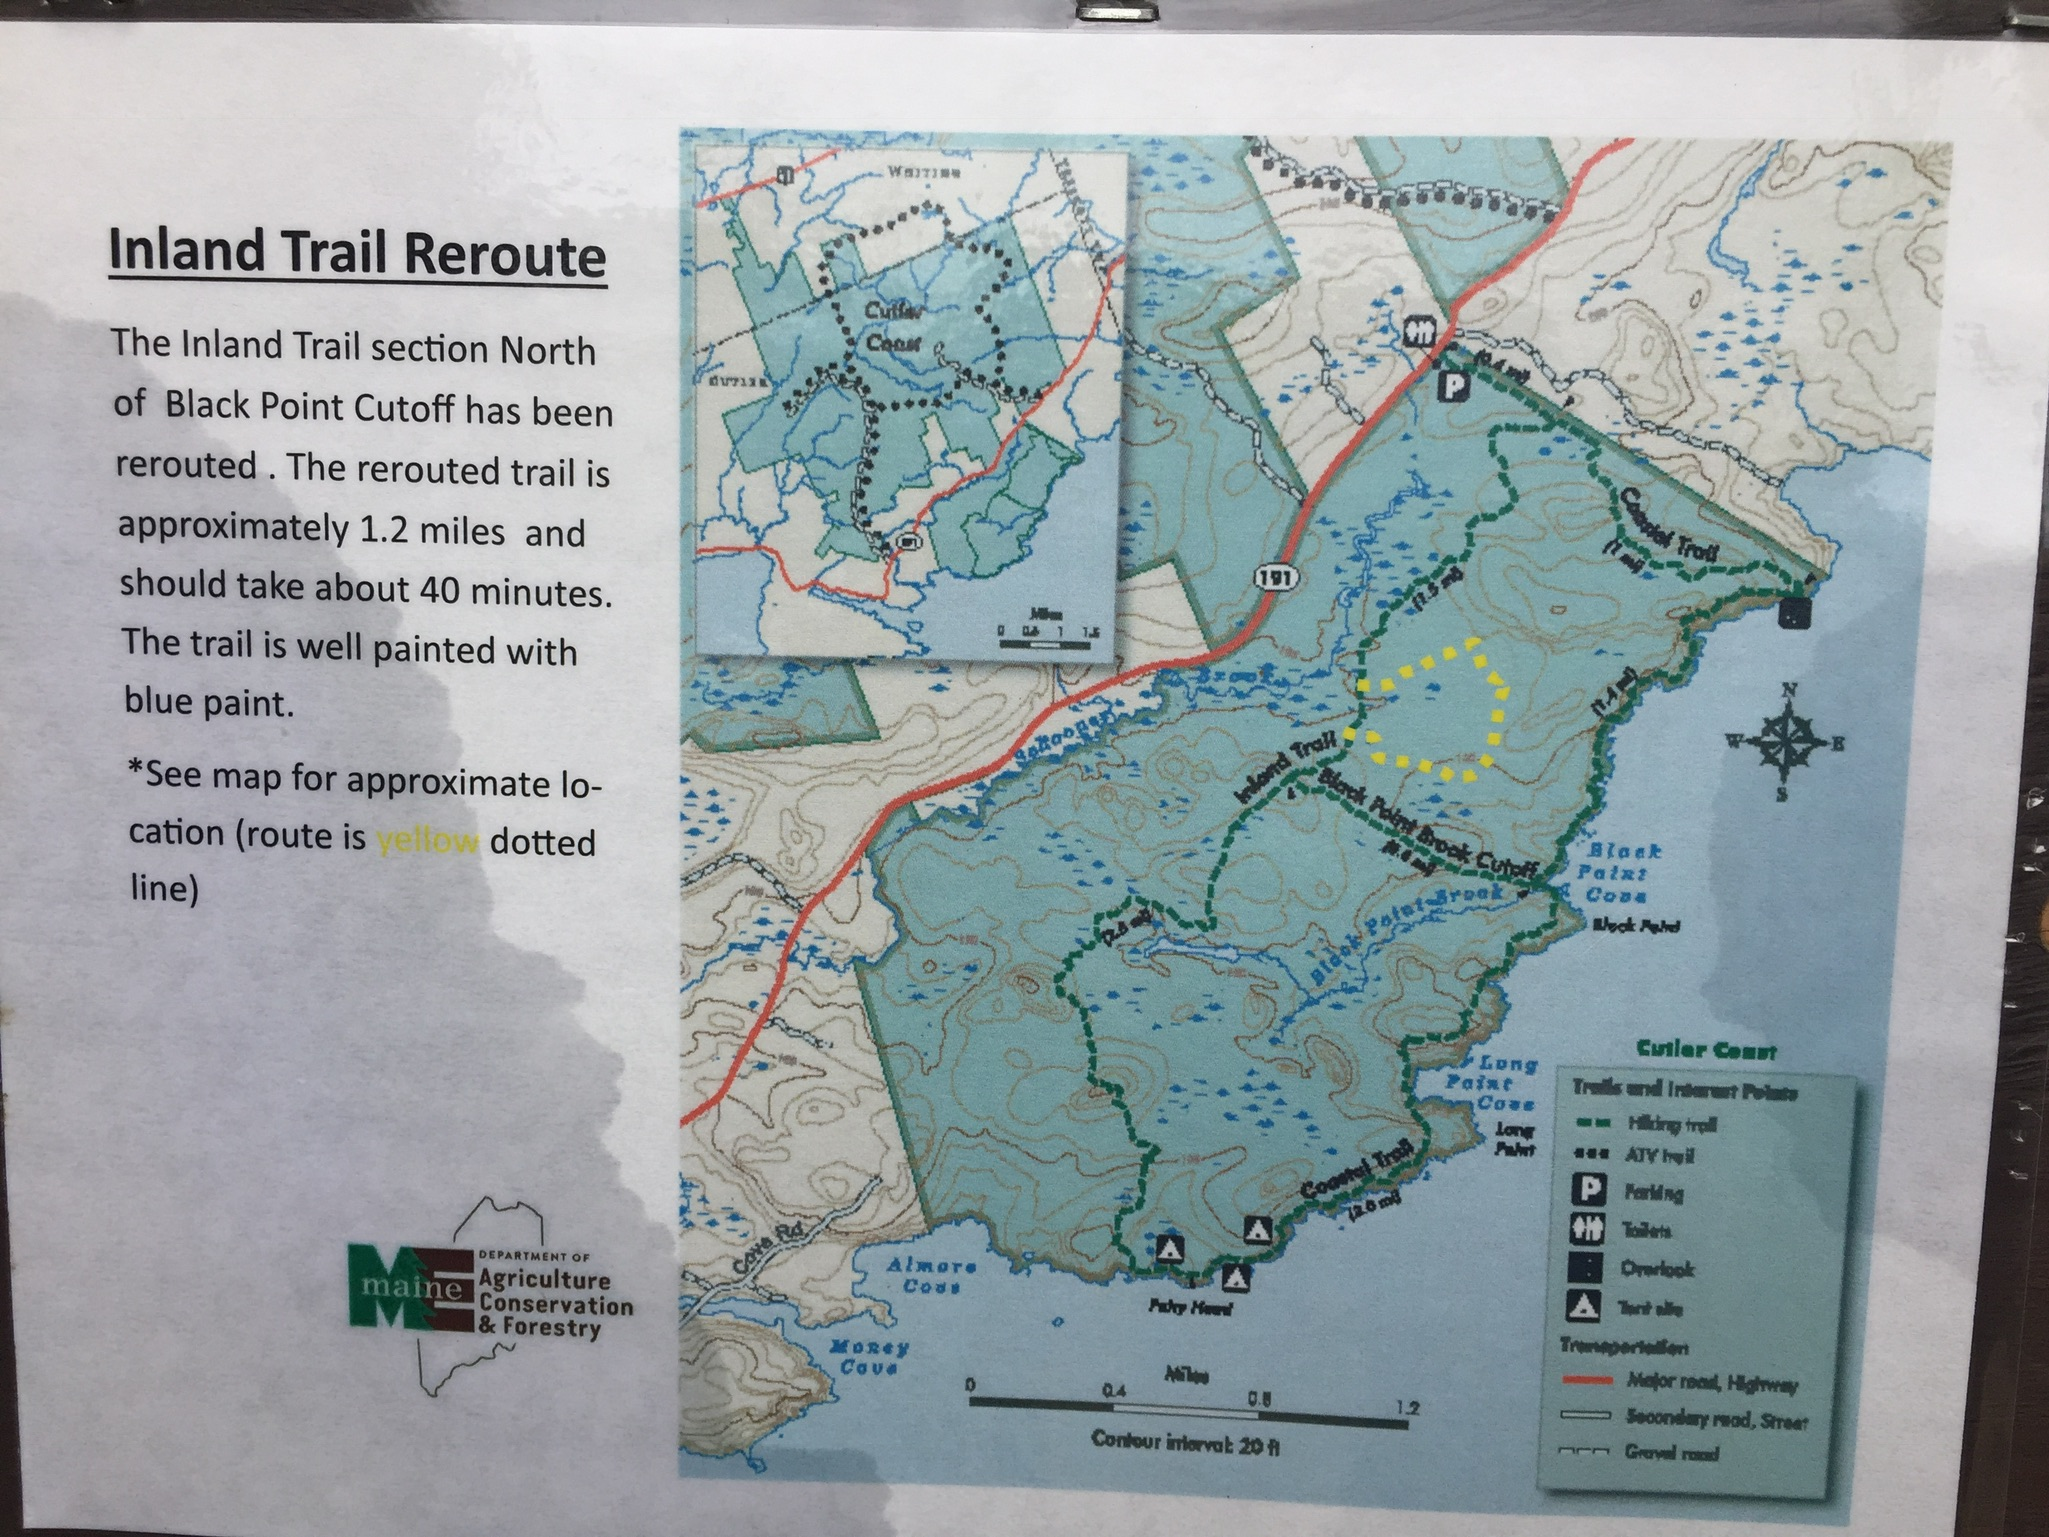 Inland Trail Reroute (note 1.2 mile change in yellow), Cutler Coast Public Lands